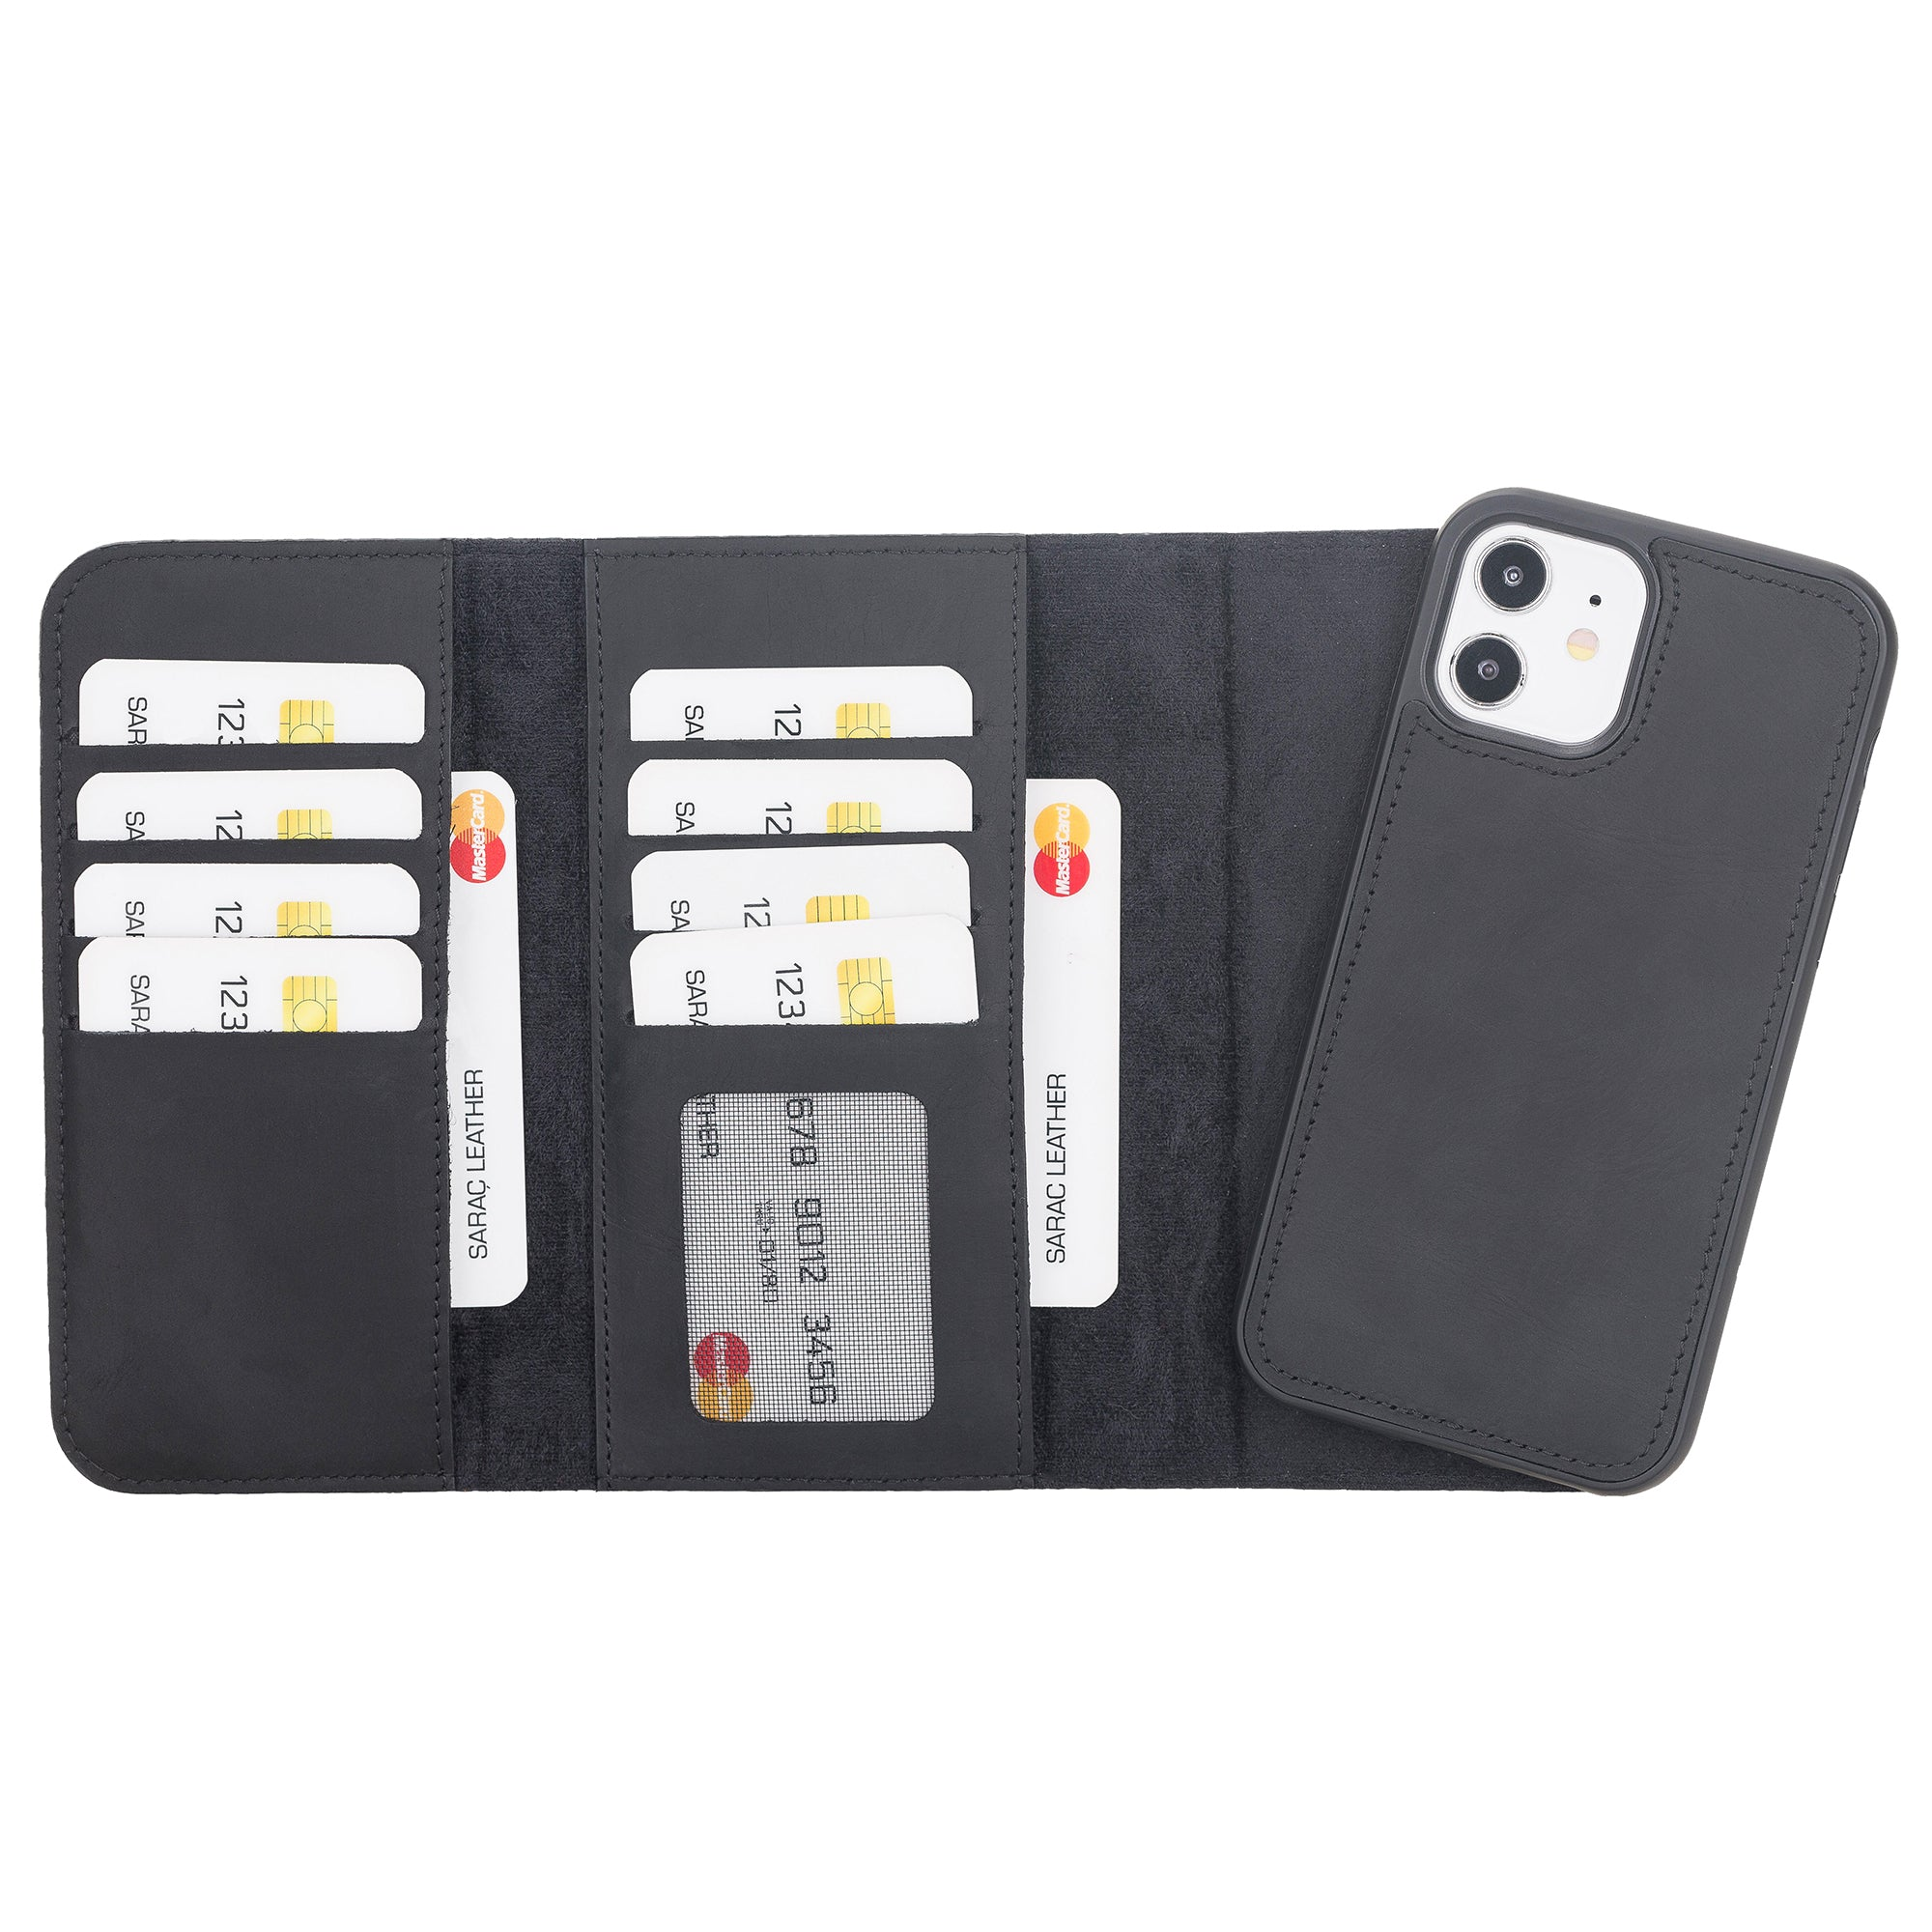 "Santa Magnetic Detachable Leather Wallet Case for iPhone 12 (6.1"") - BLACK - saracleather"